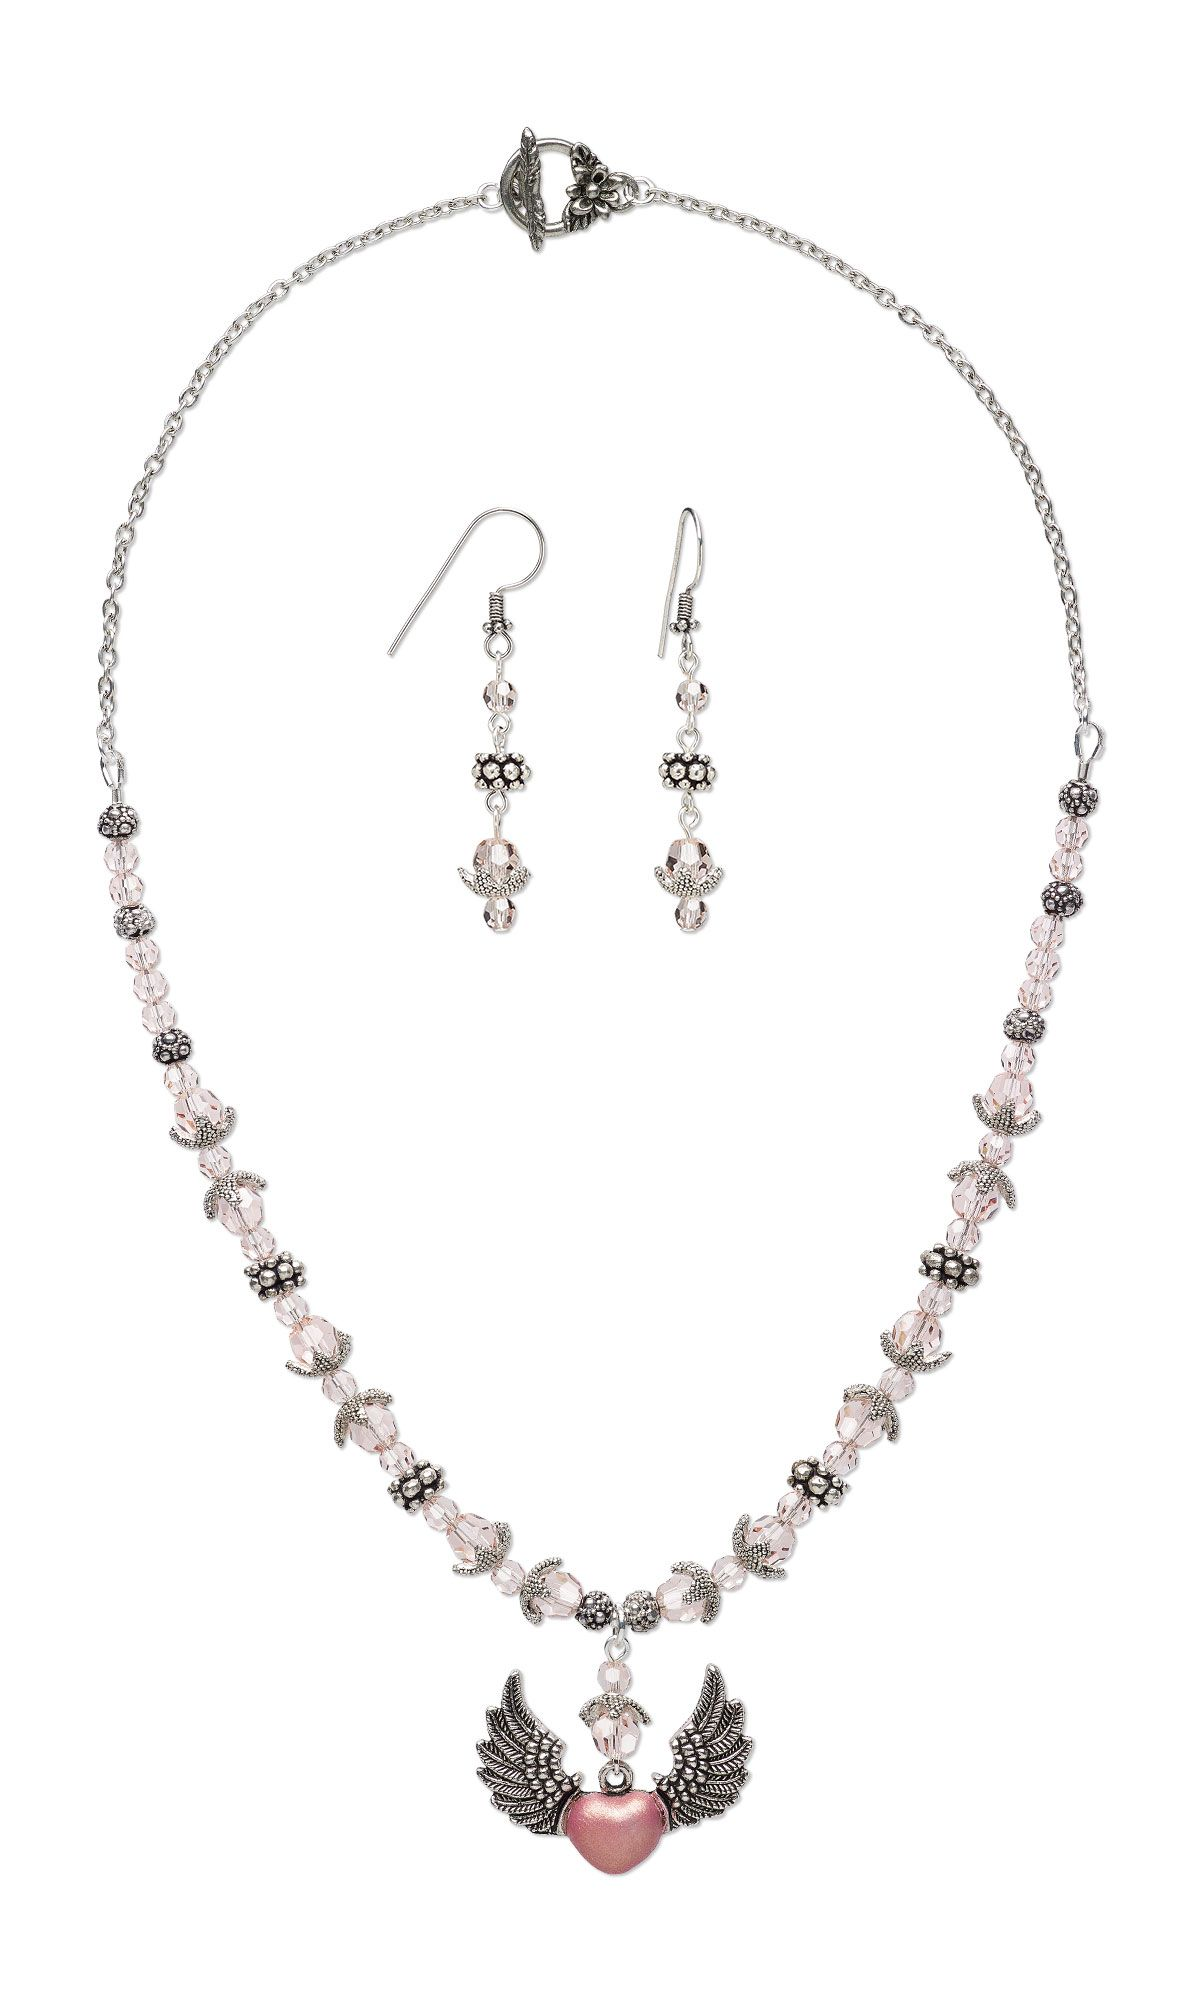 Preciosa Czech Crystal Bead Necklace Featuring Heart With